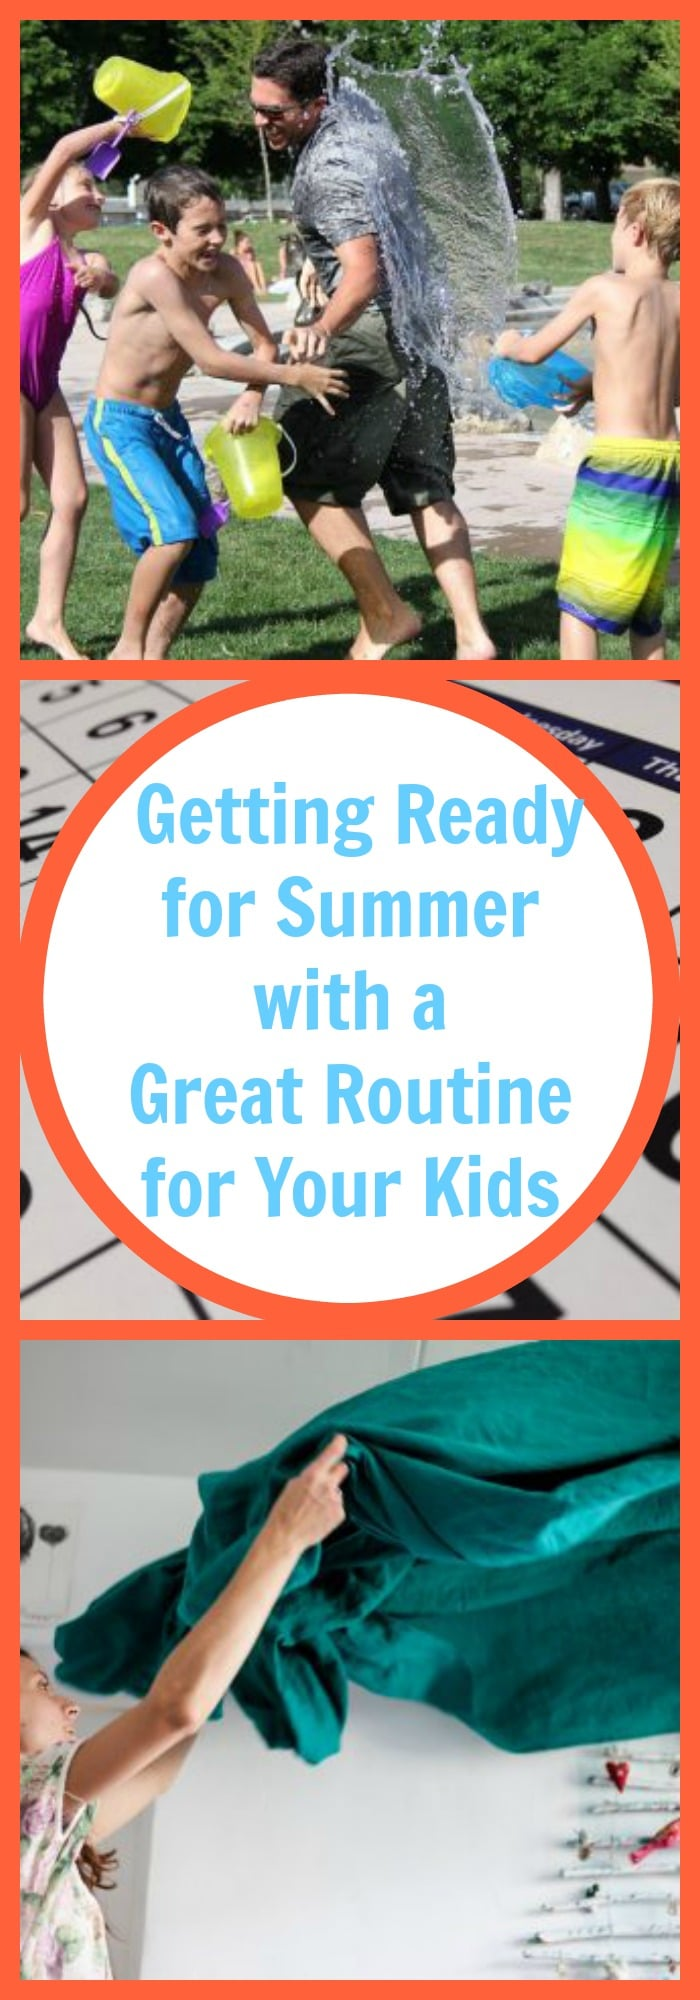 Parenting--Getting Ready for Summer with a Great Routine for Your Kids--The Organized Mom